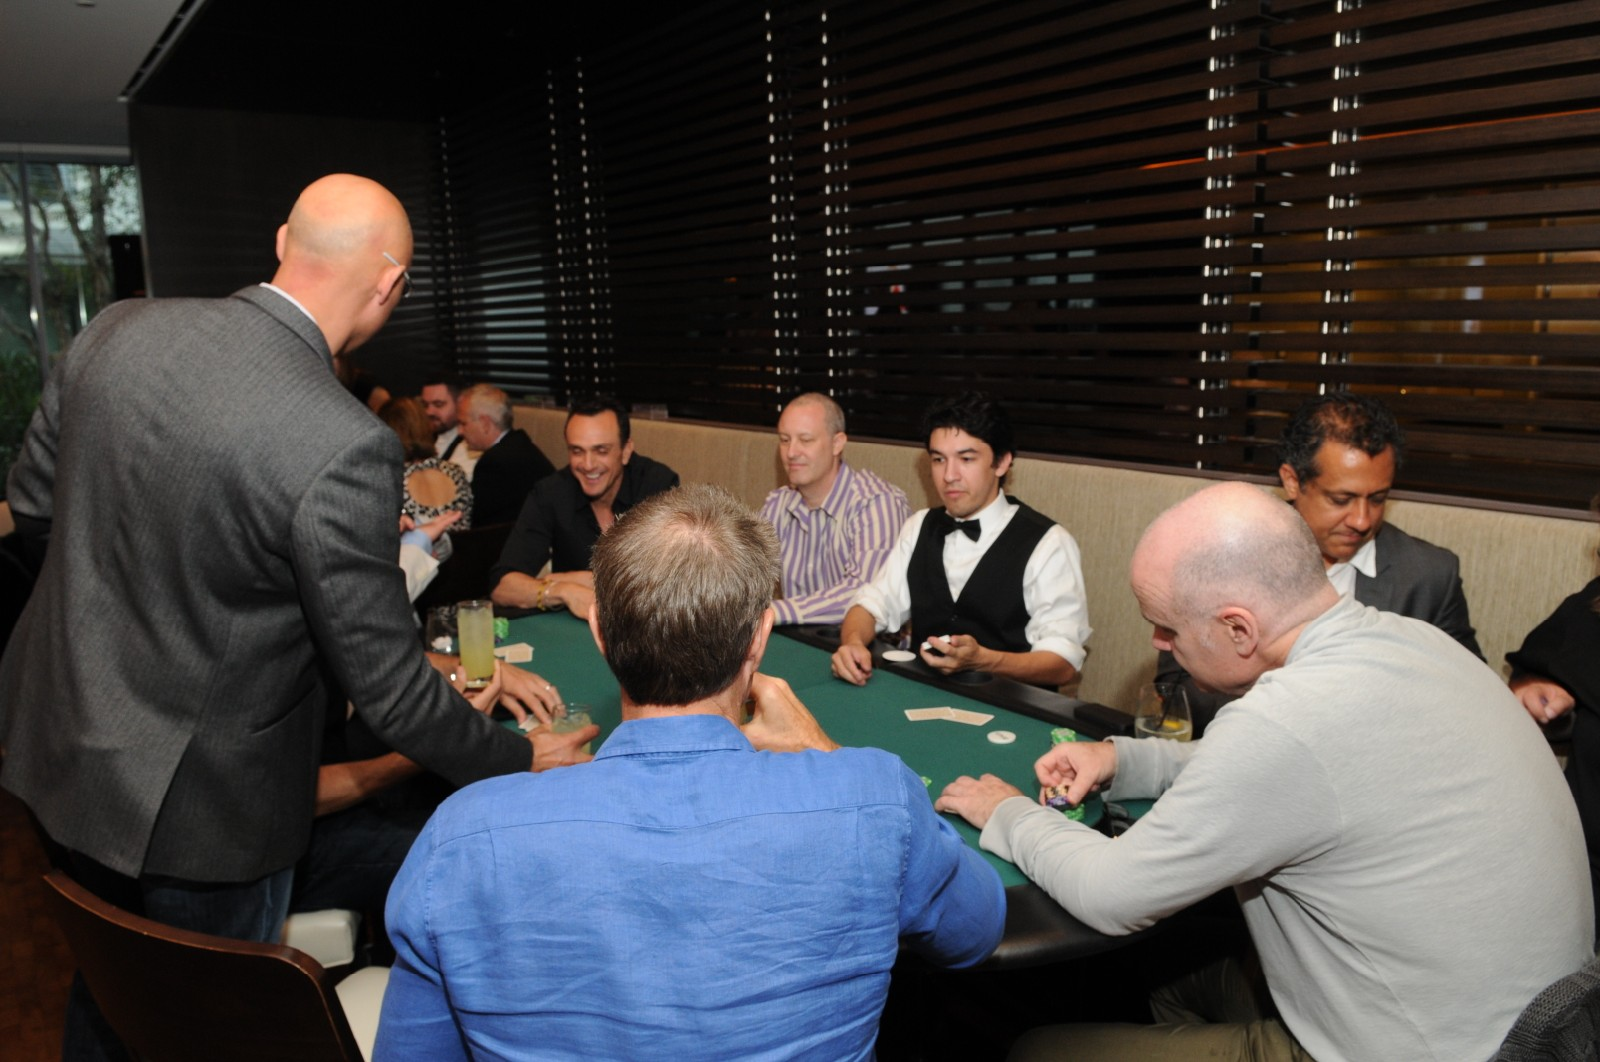 Hank Azaria and guests playing poker